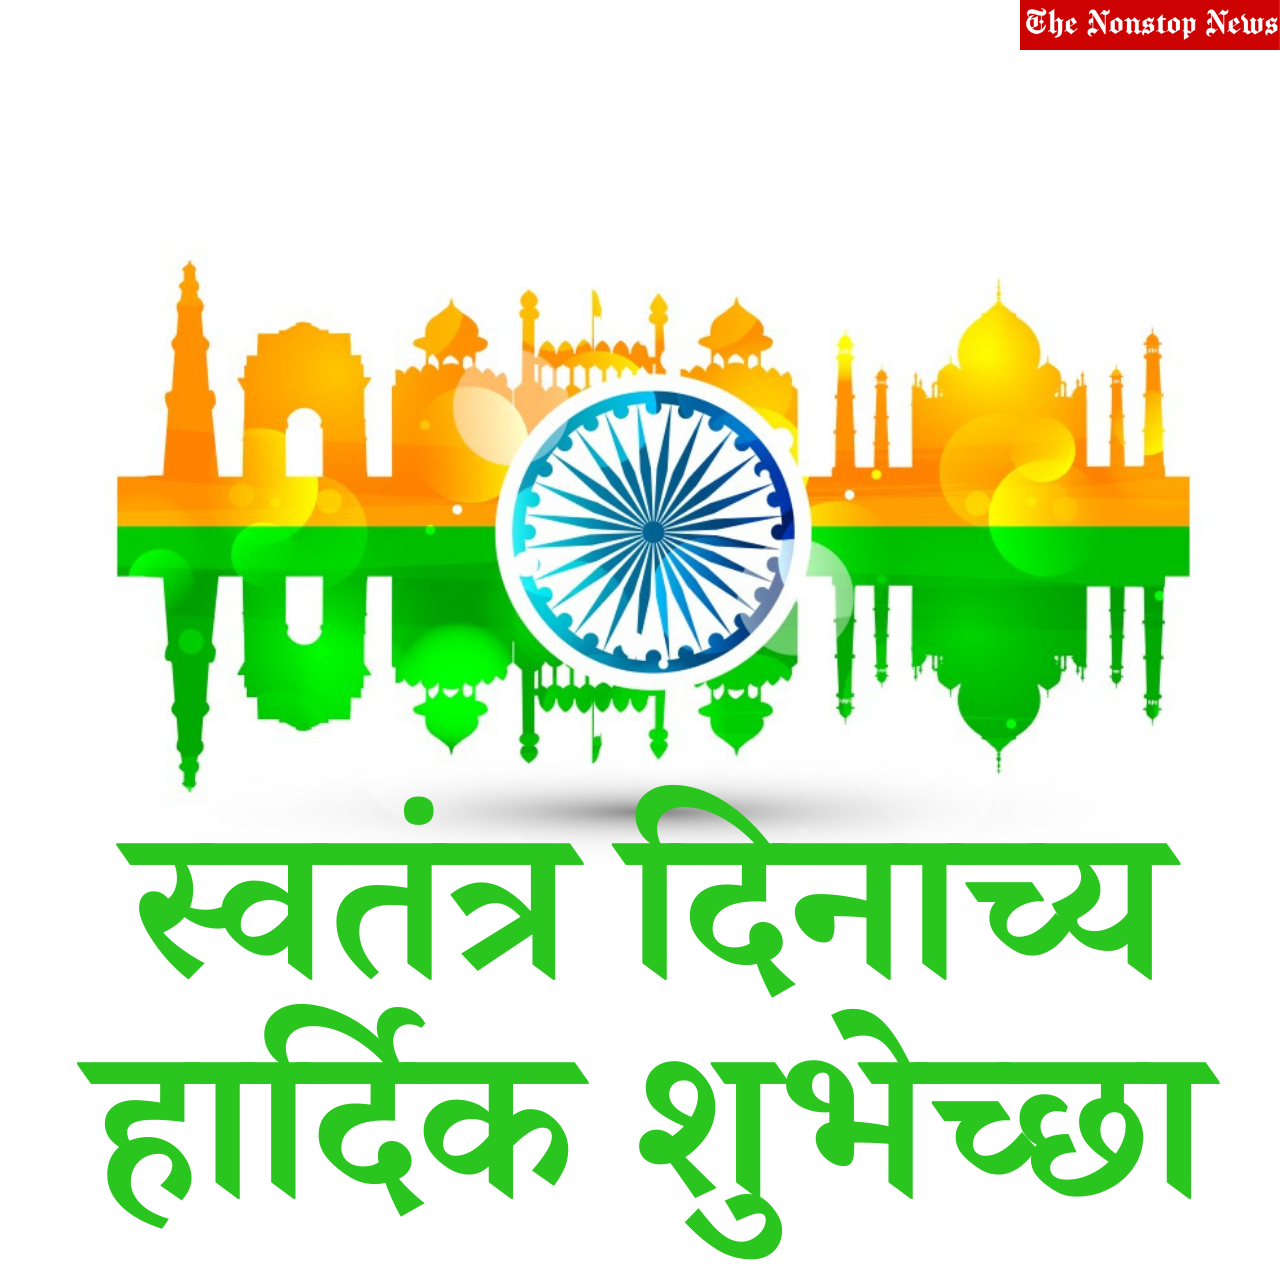 Swatantra Dinachya Hardik Shubhechha 2021 Marathi Wishes, HD Images, Status, Shayari, Quotes, Greetings, Messages, Poster, and Gif for 75th Indian Independence Day